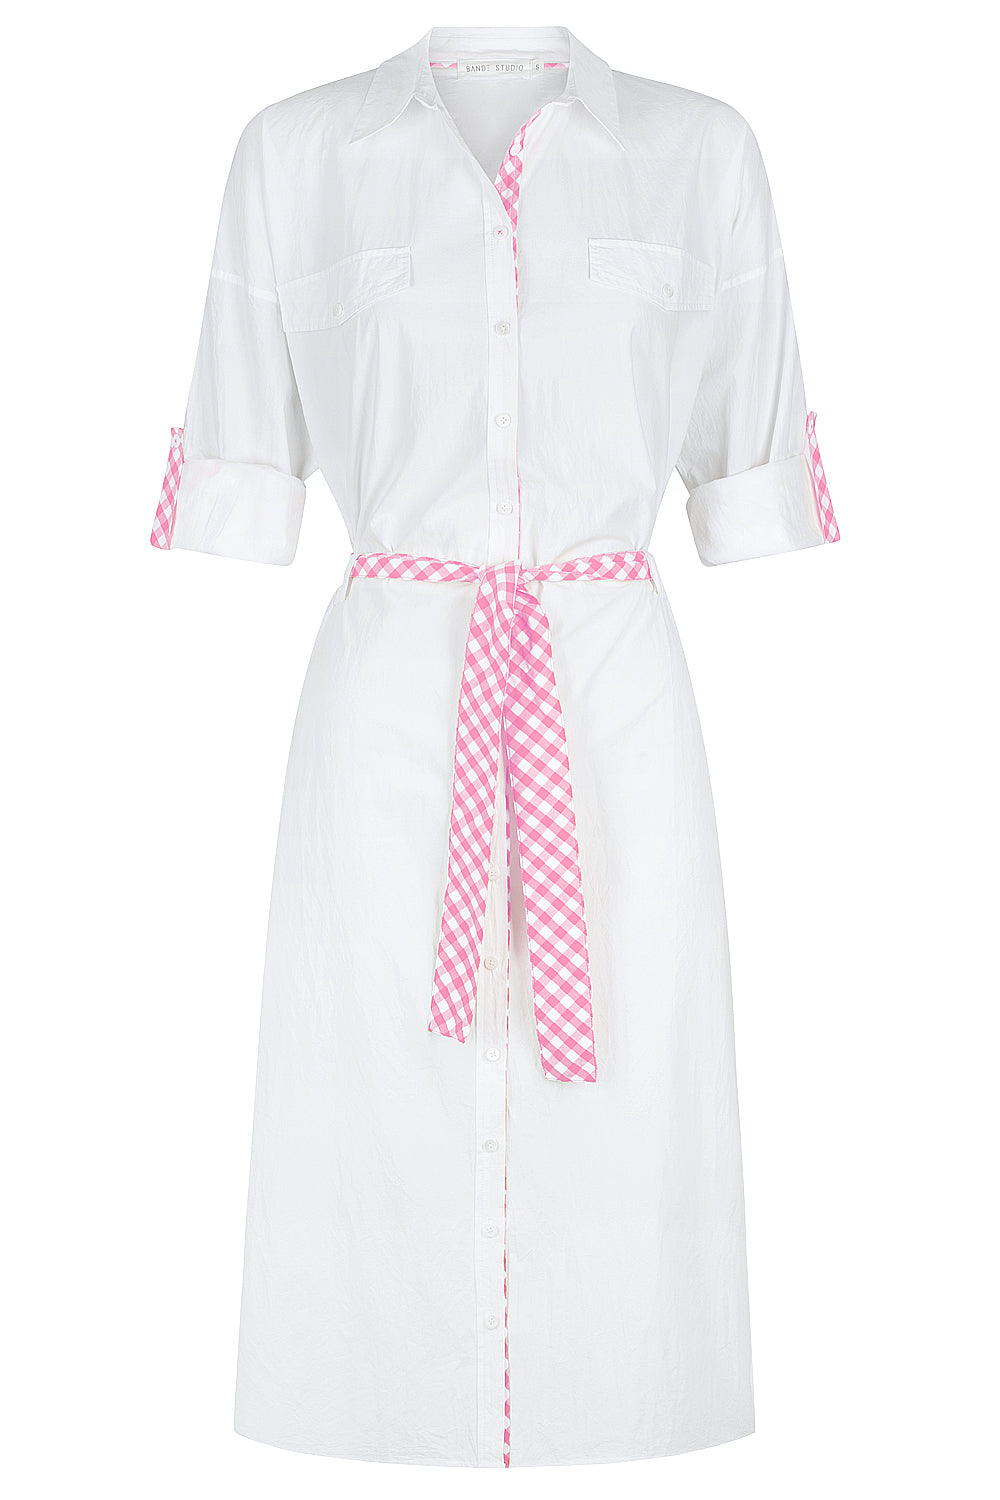 Gingham Shirt Dress - white w/ pink gingham